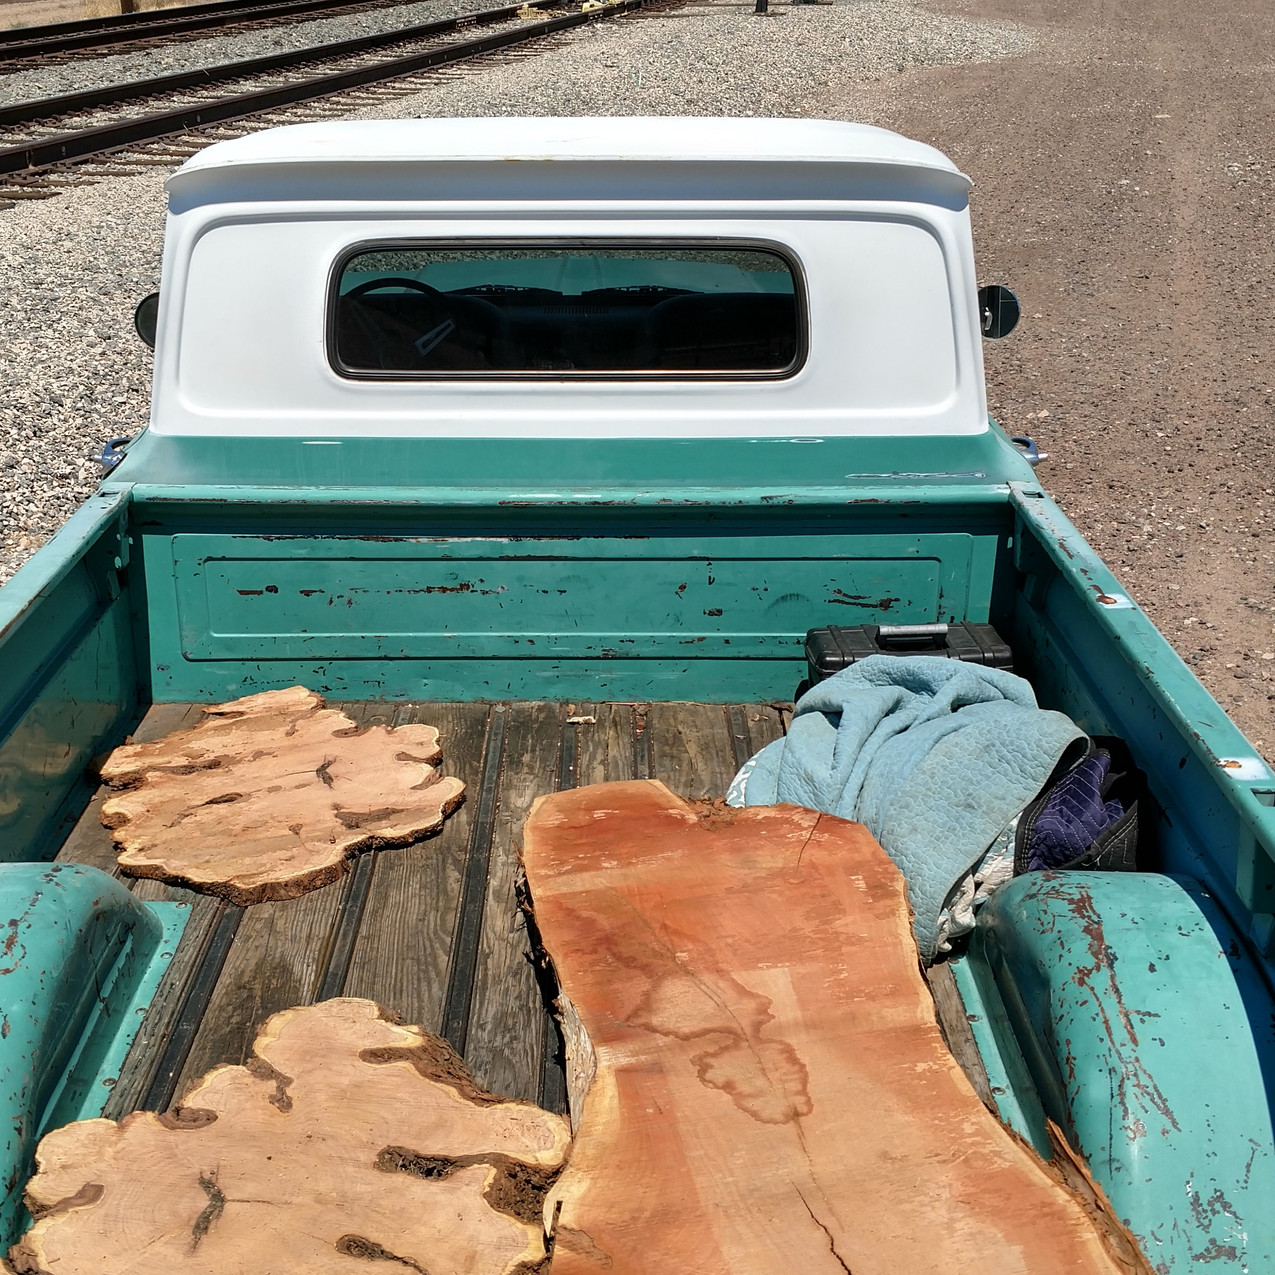 Today's haul from the local saw mill, reclaimed urban mesquite wood slabs